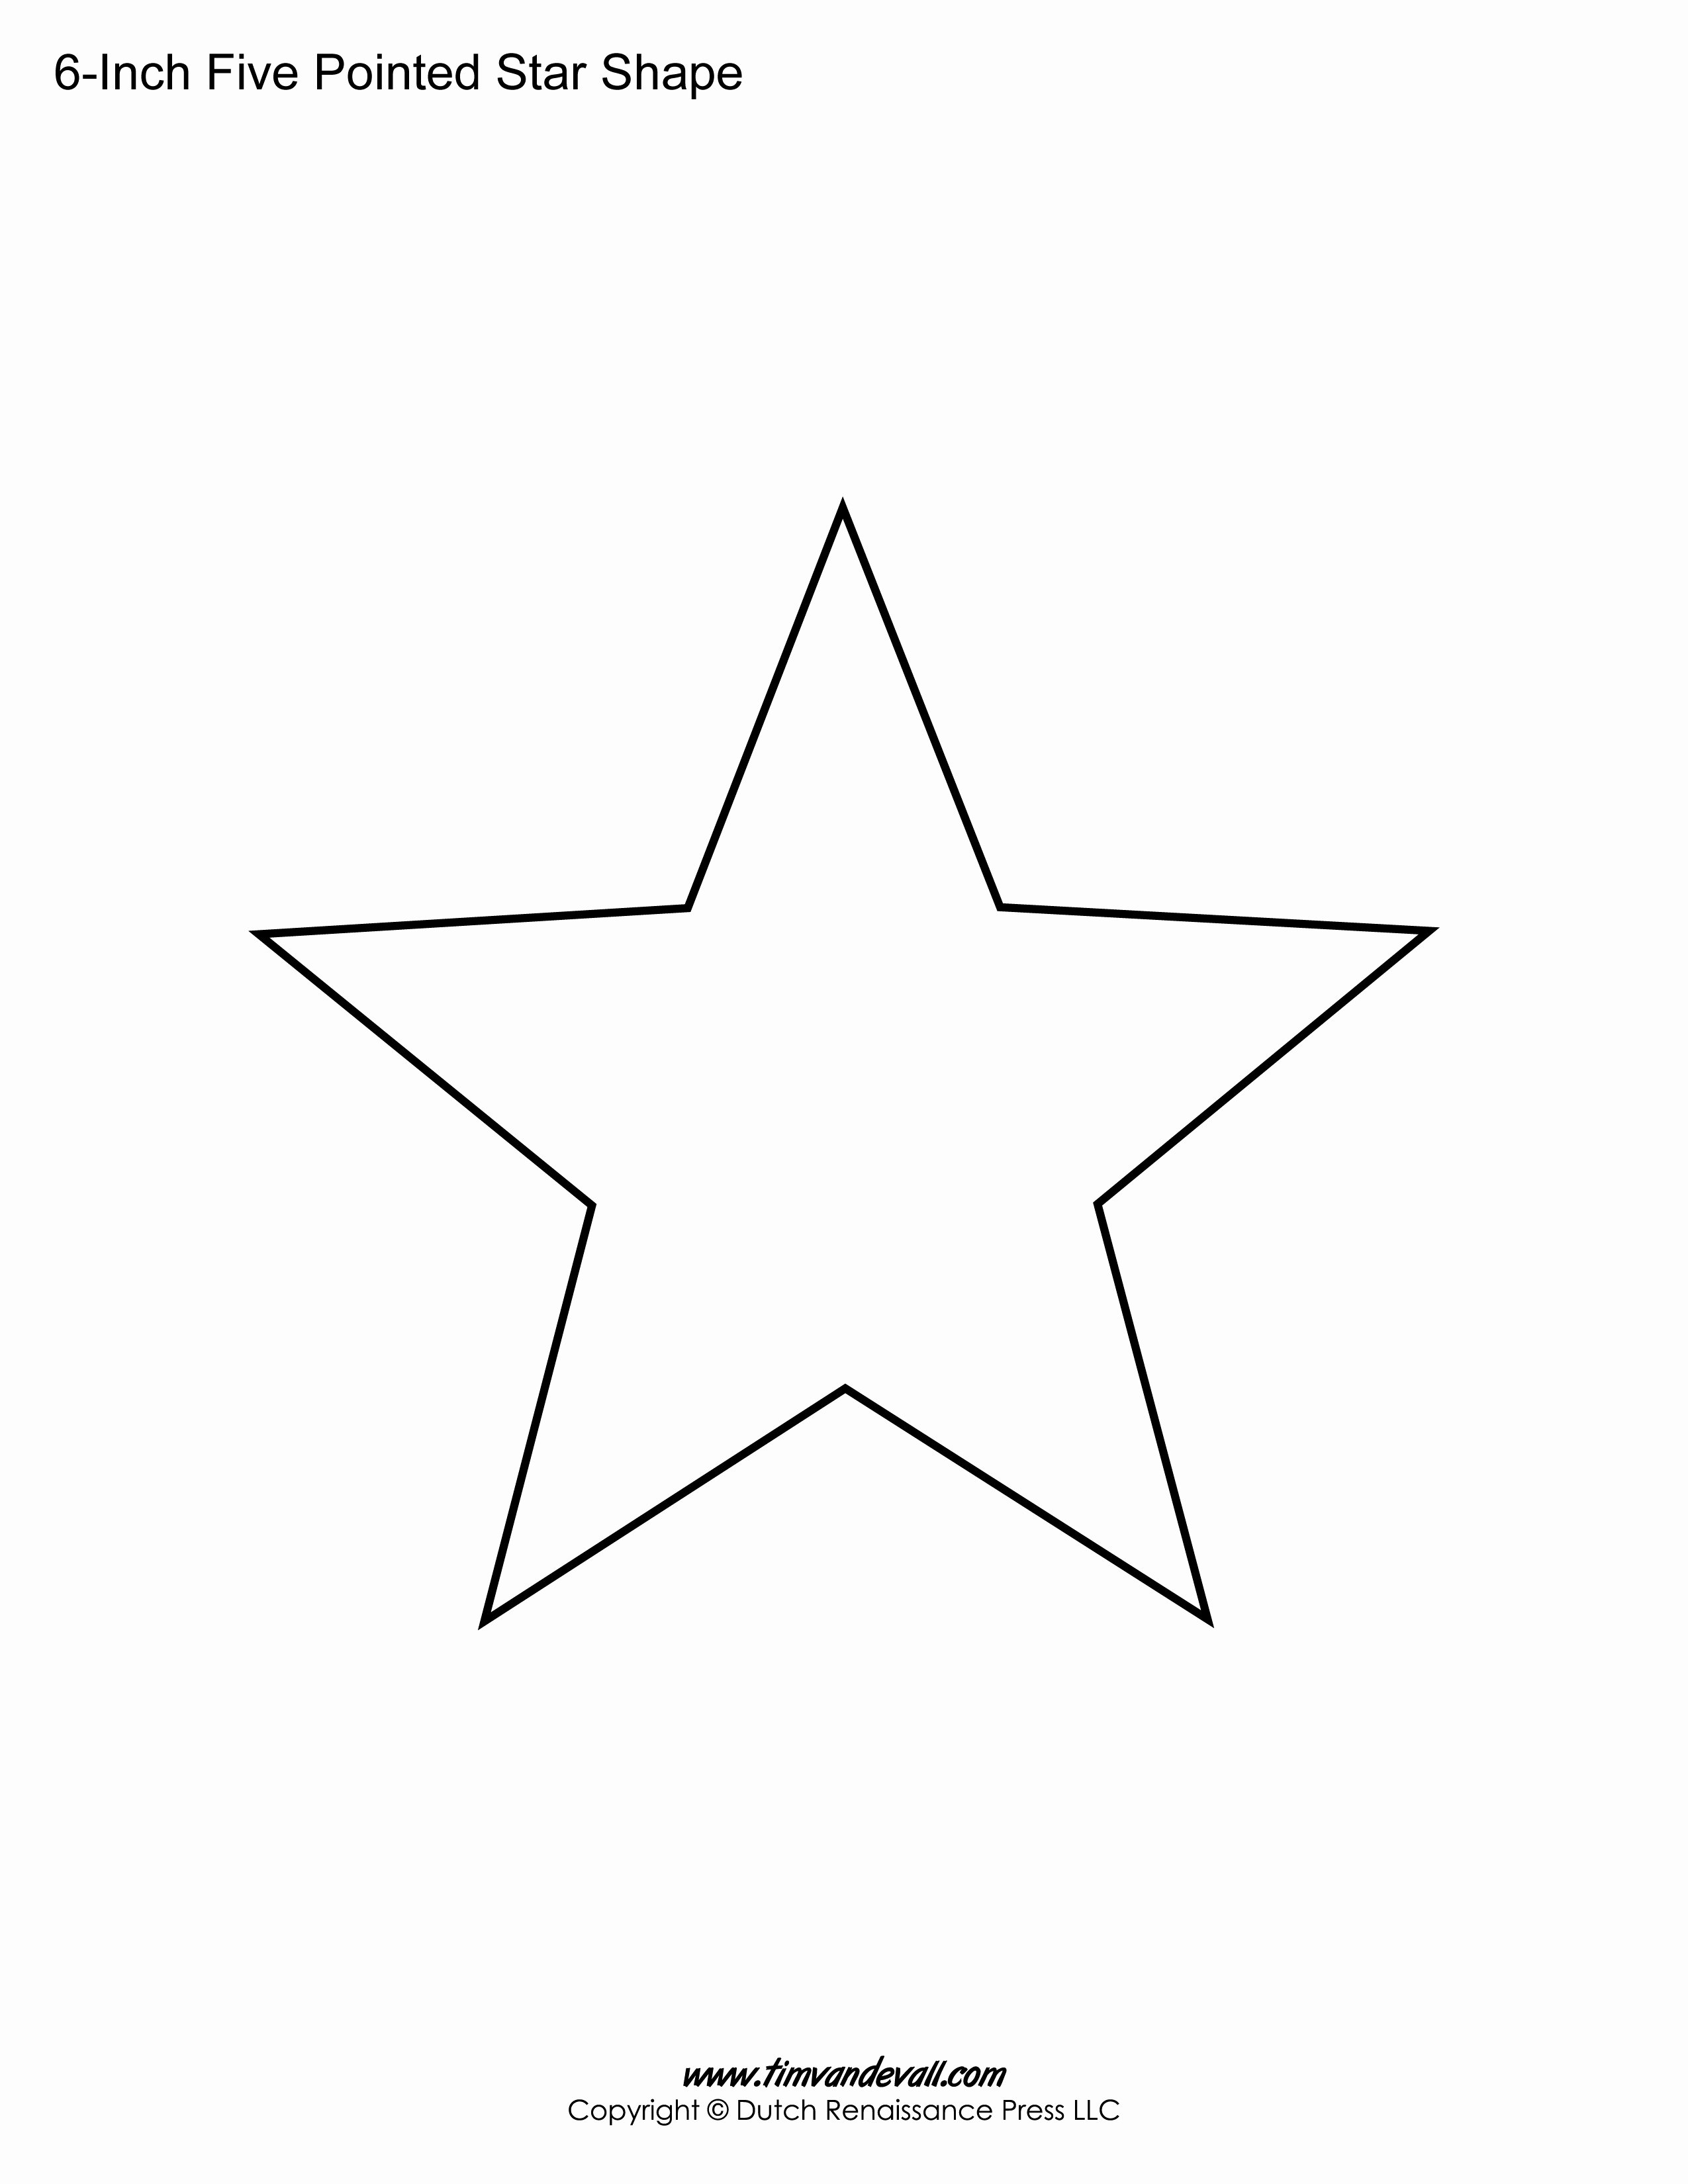 3 Inch Star Template Lovely Printable Five Pointed Star Templates Blank Shape Pdfs